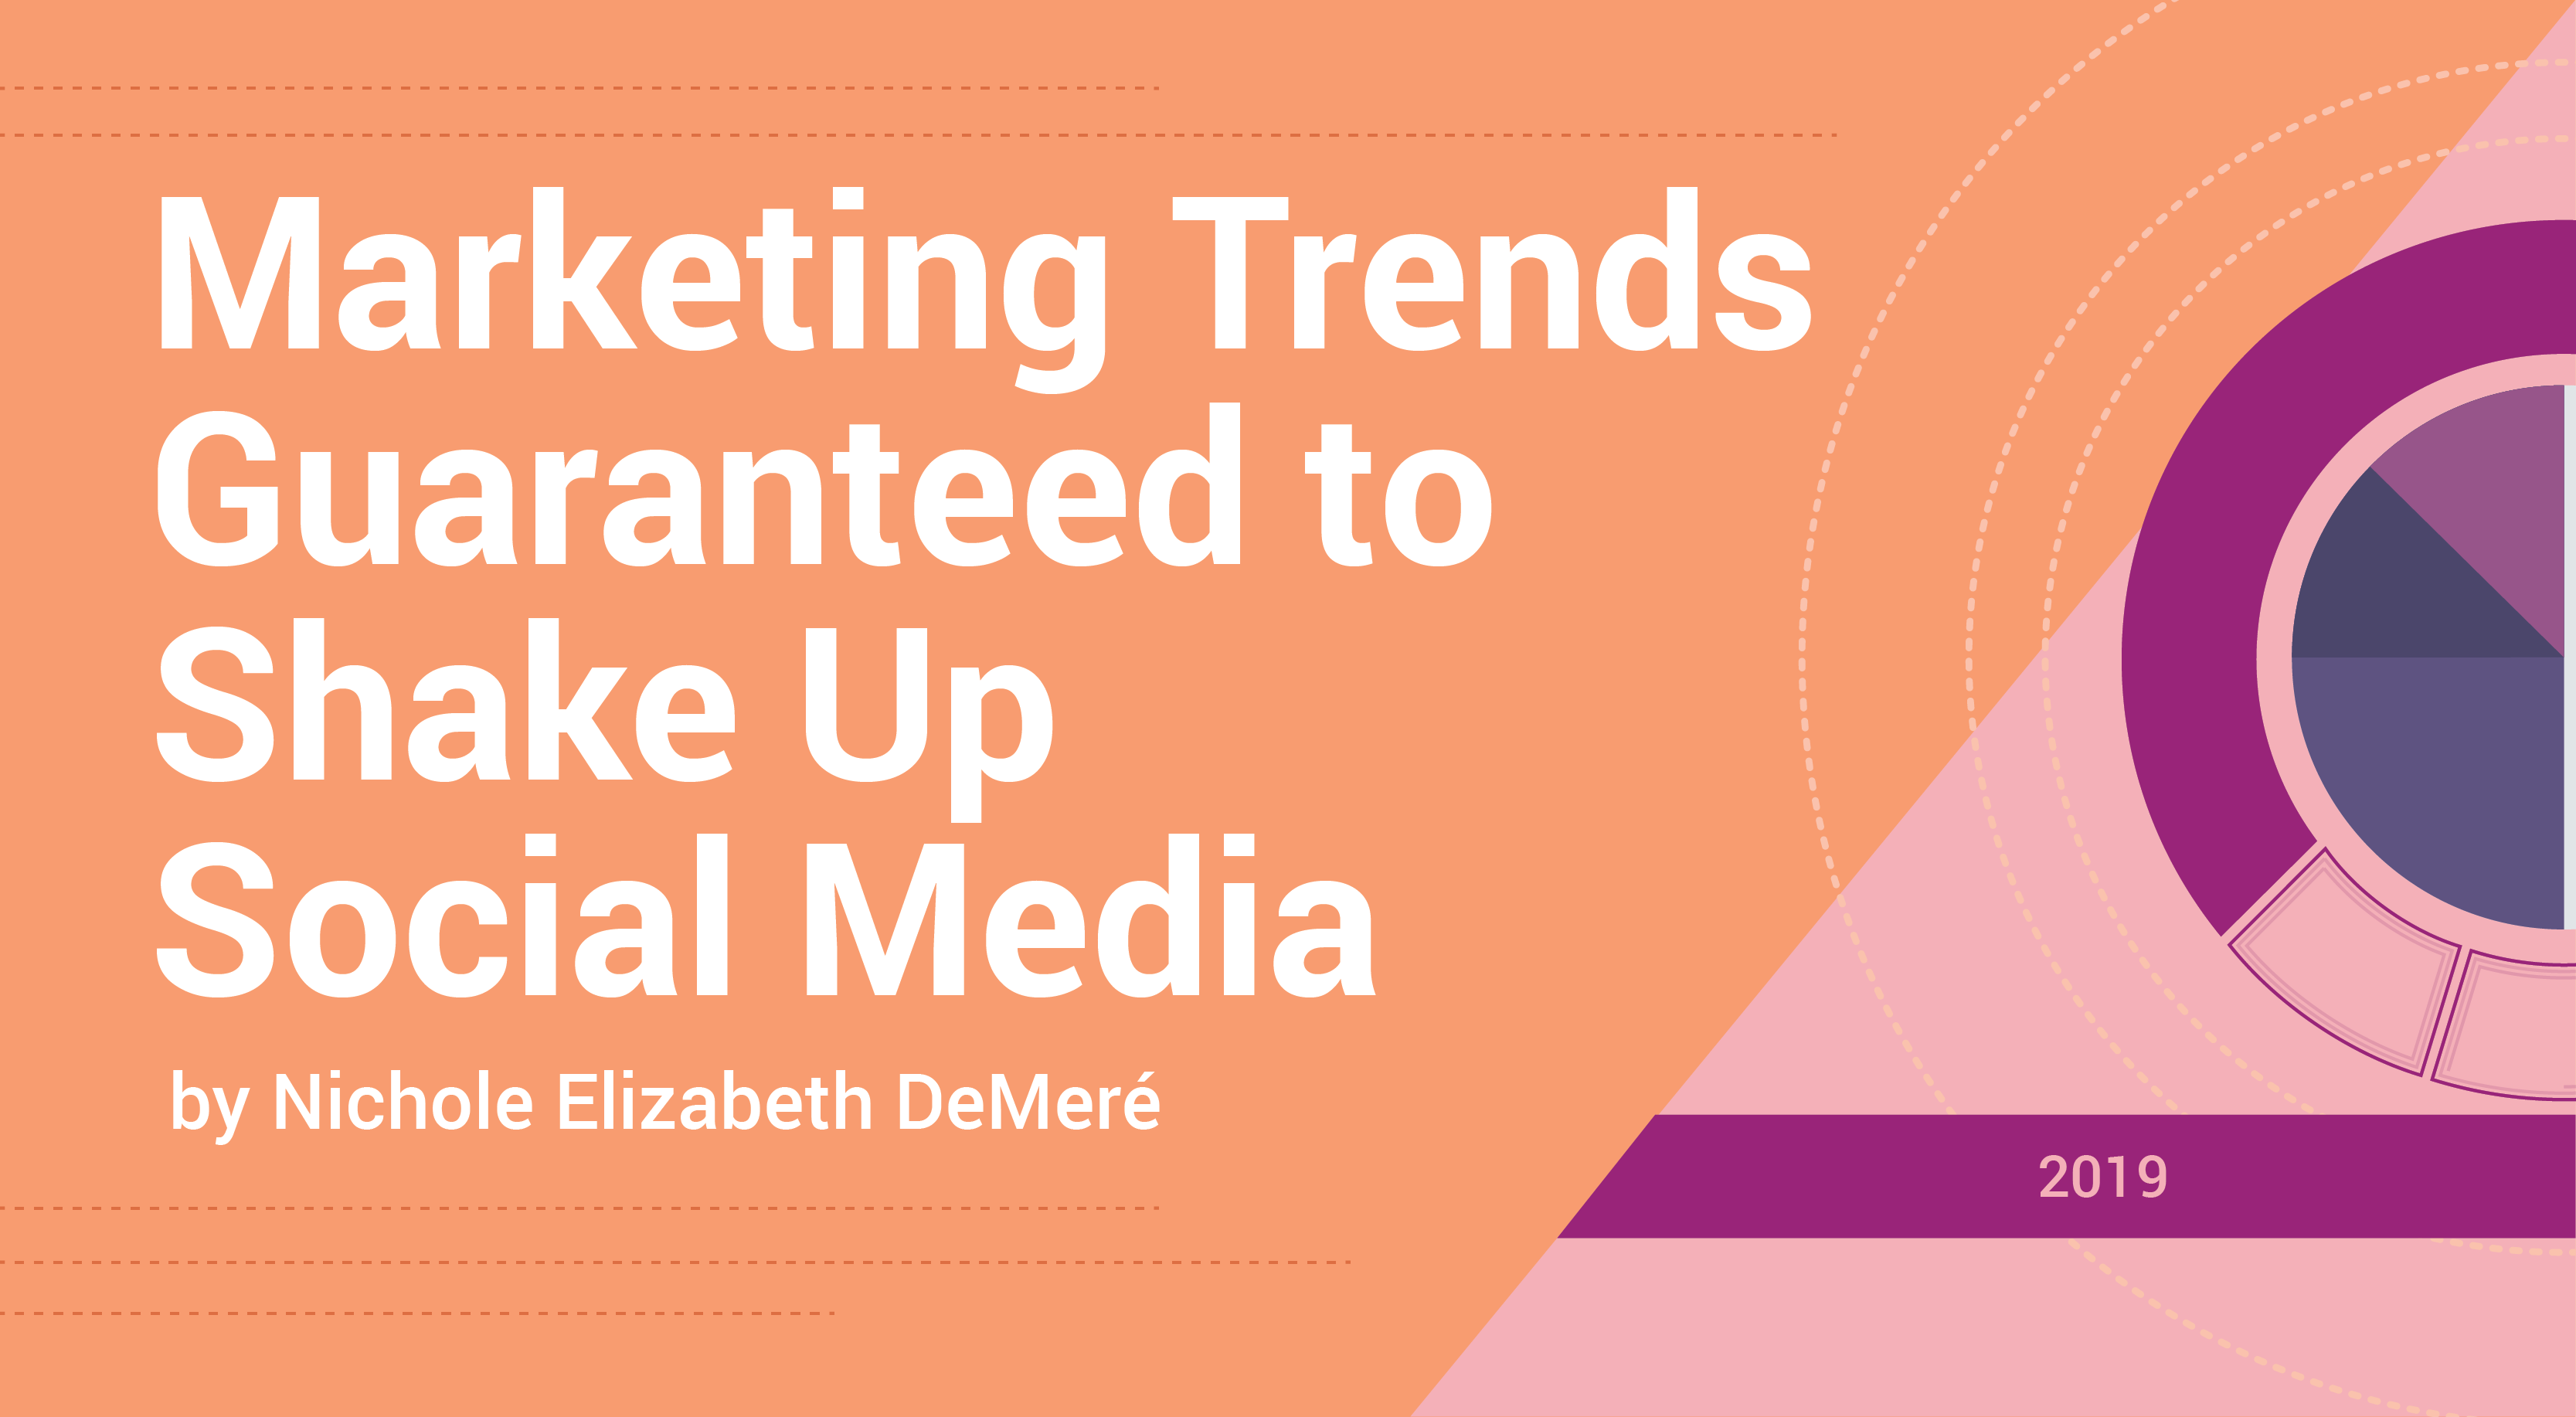 2019 Marketing Trends Guaranteed to Shake Up Social Media